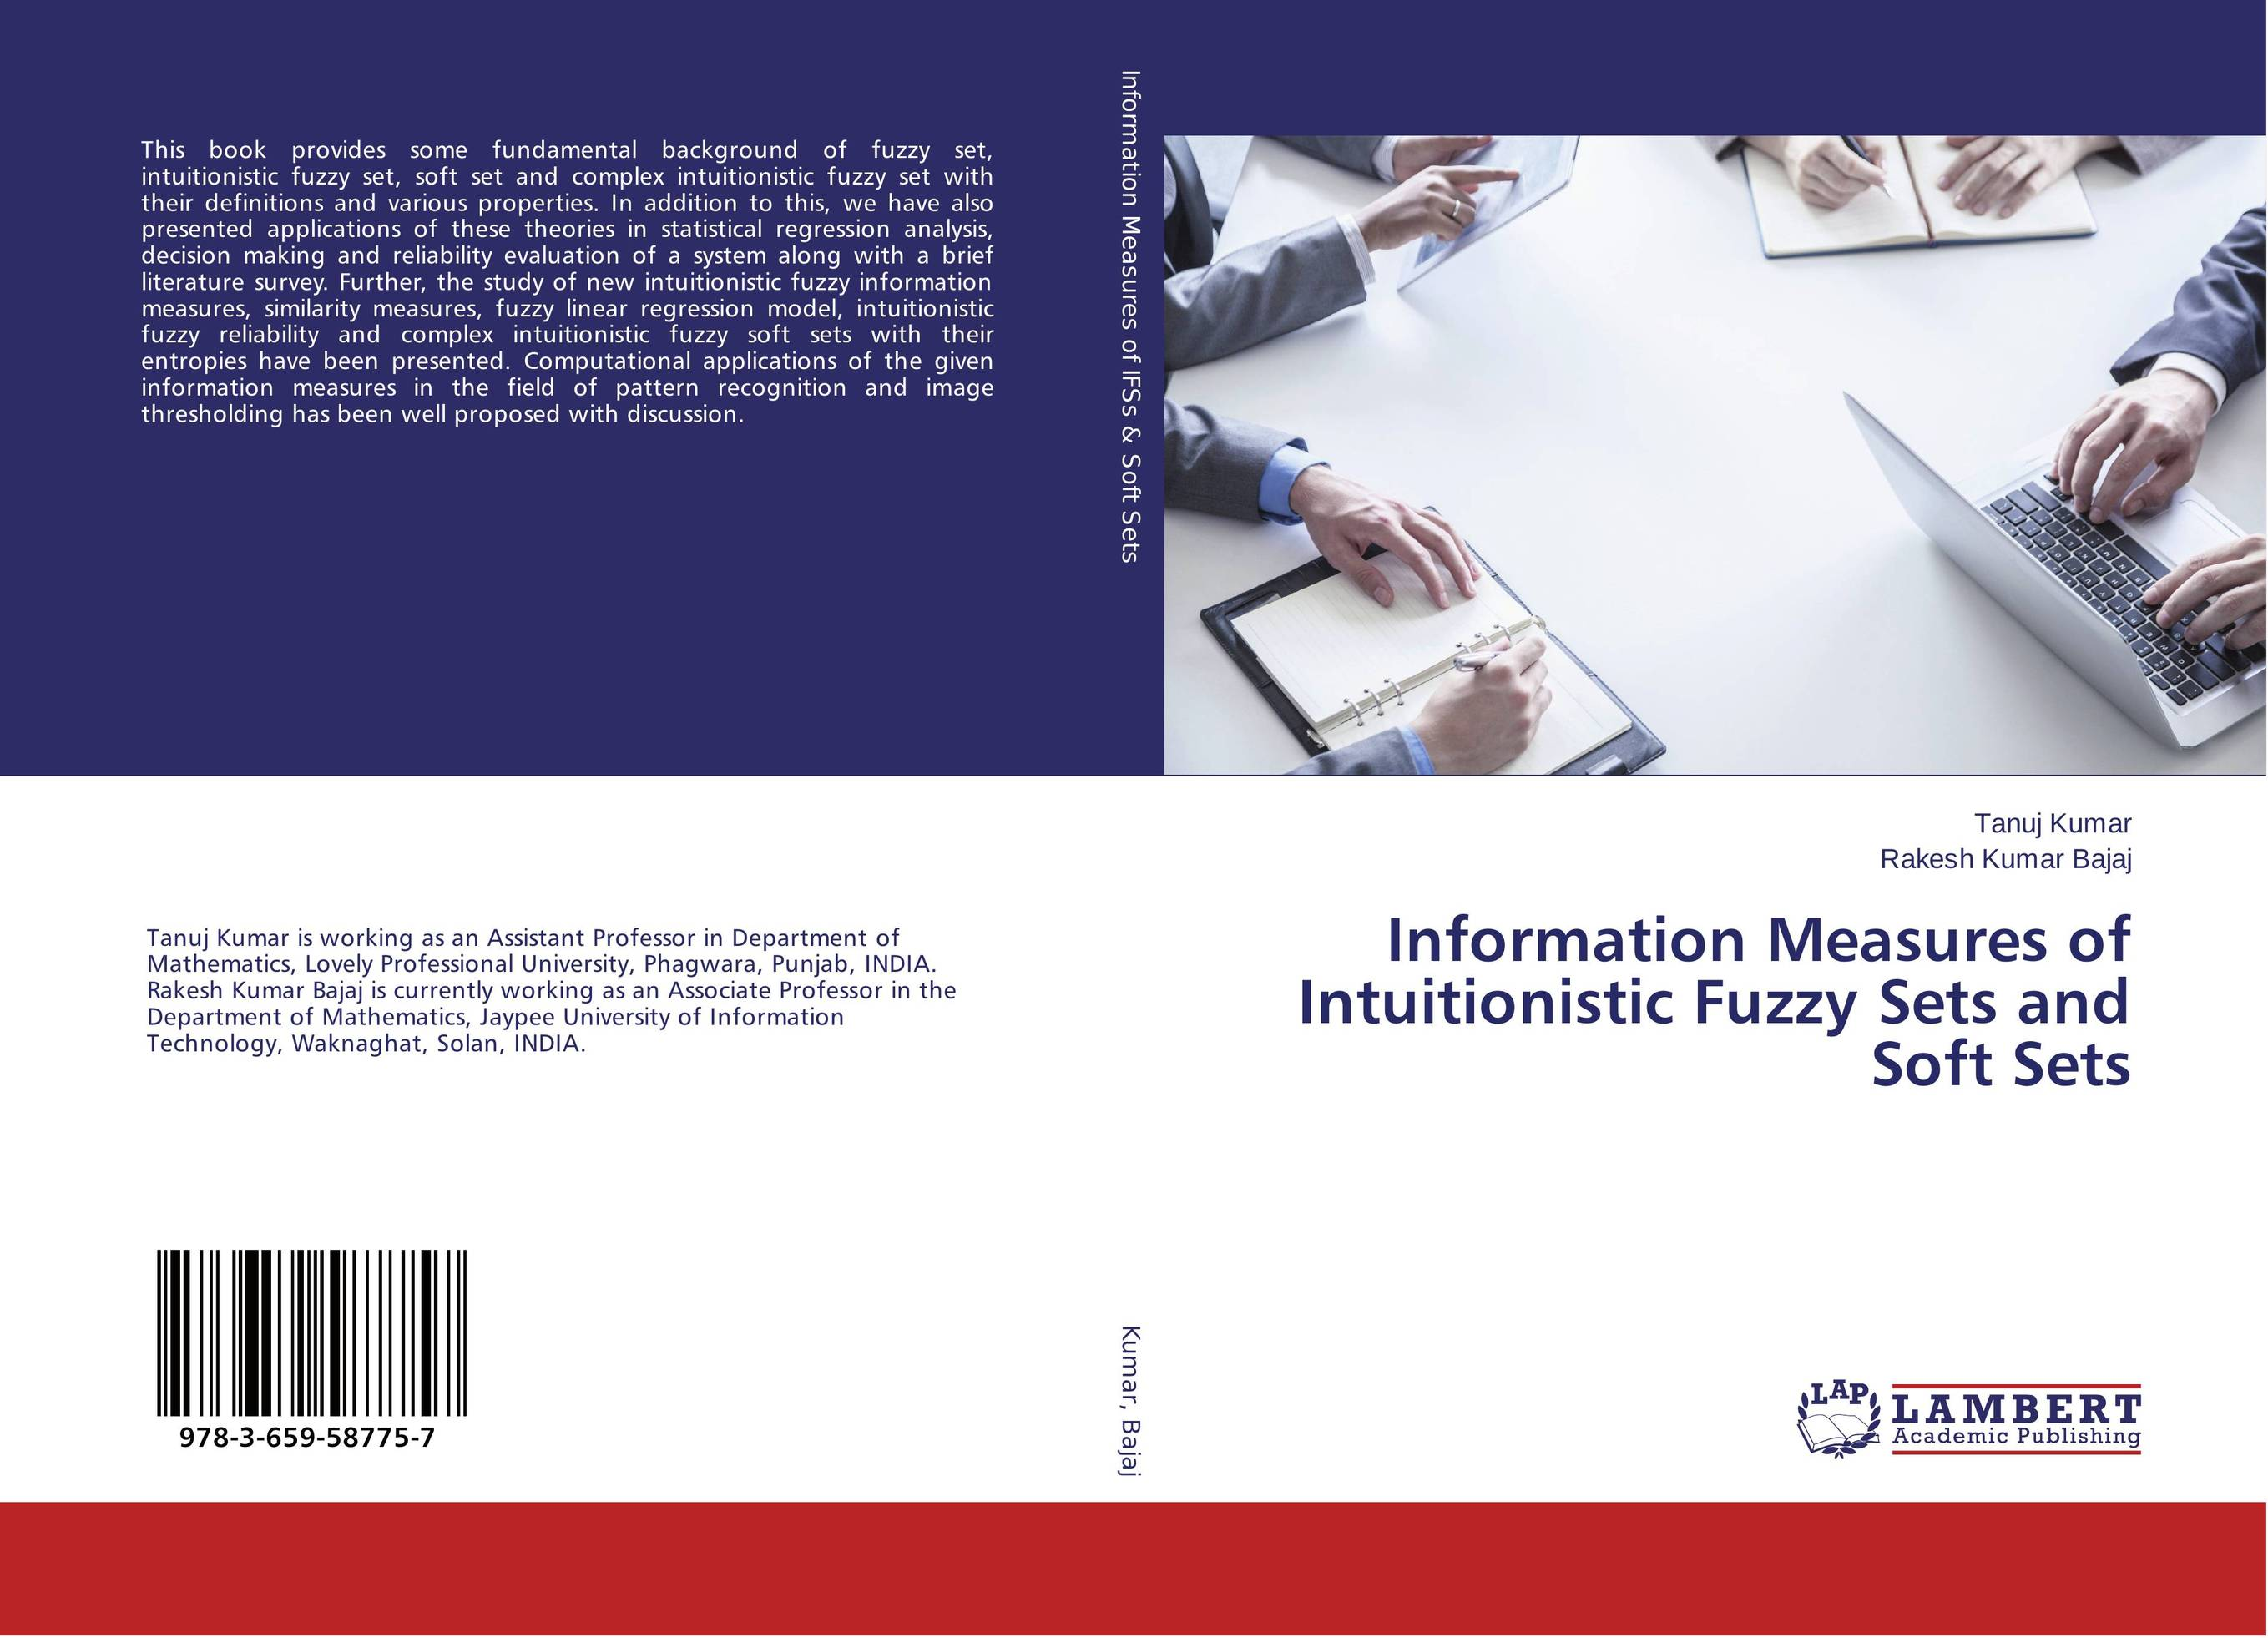 Information Measures of Intuitionistic Fuzzy Sets and Soft Sets linear regression models with heteroscedastic errors